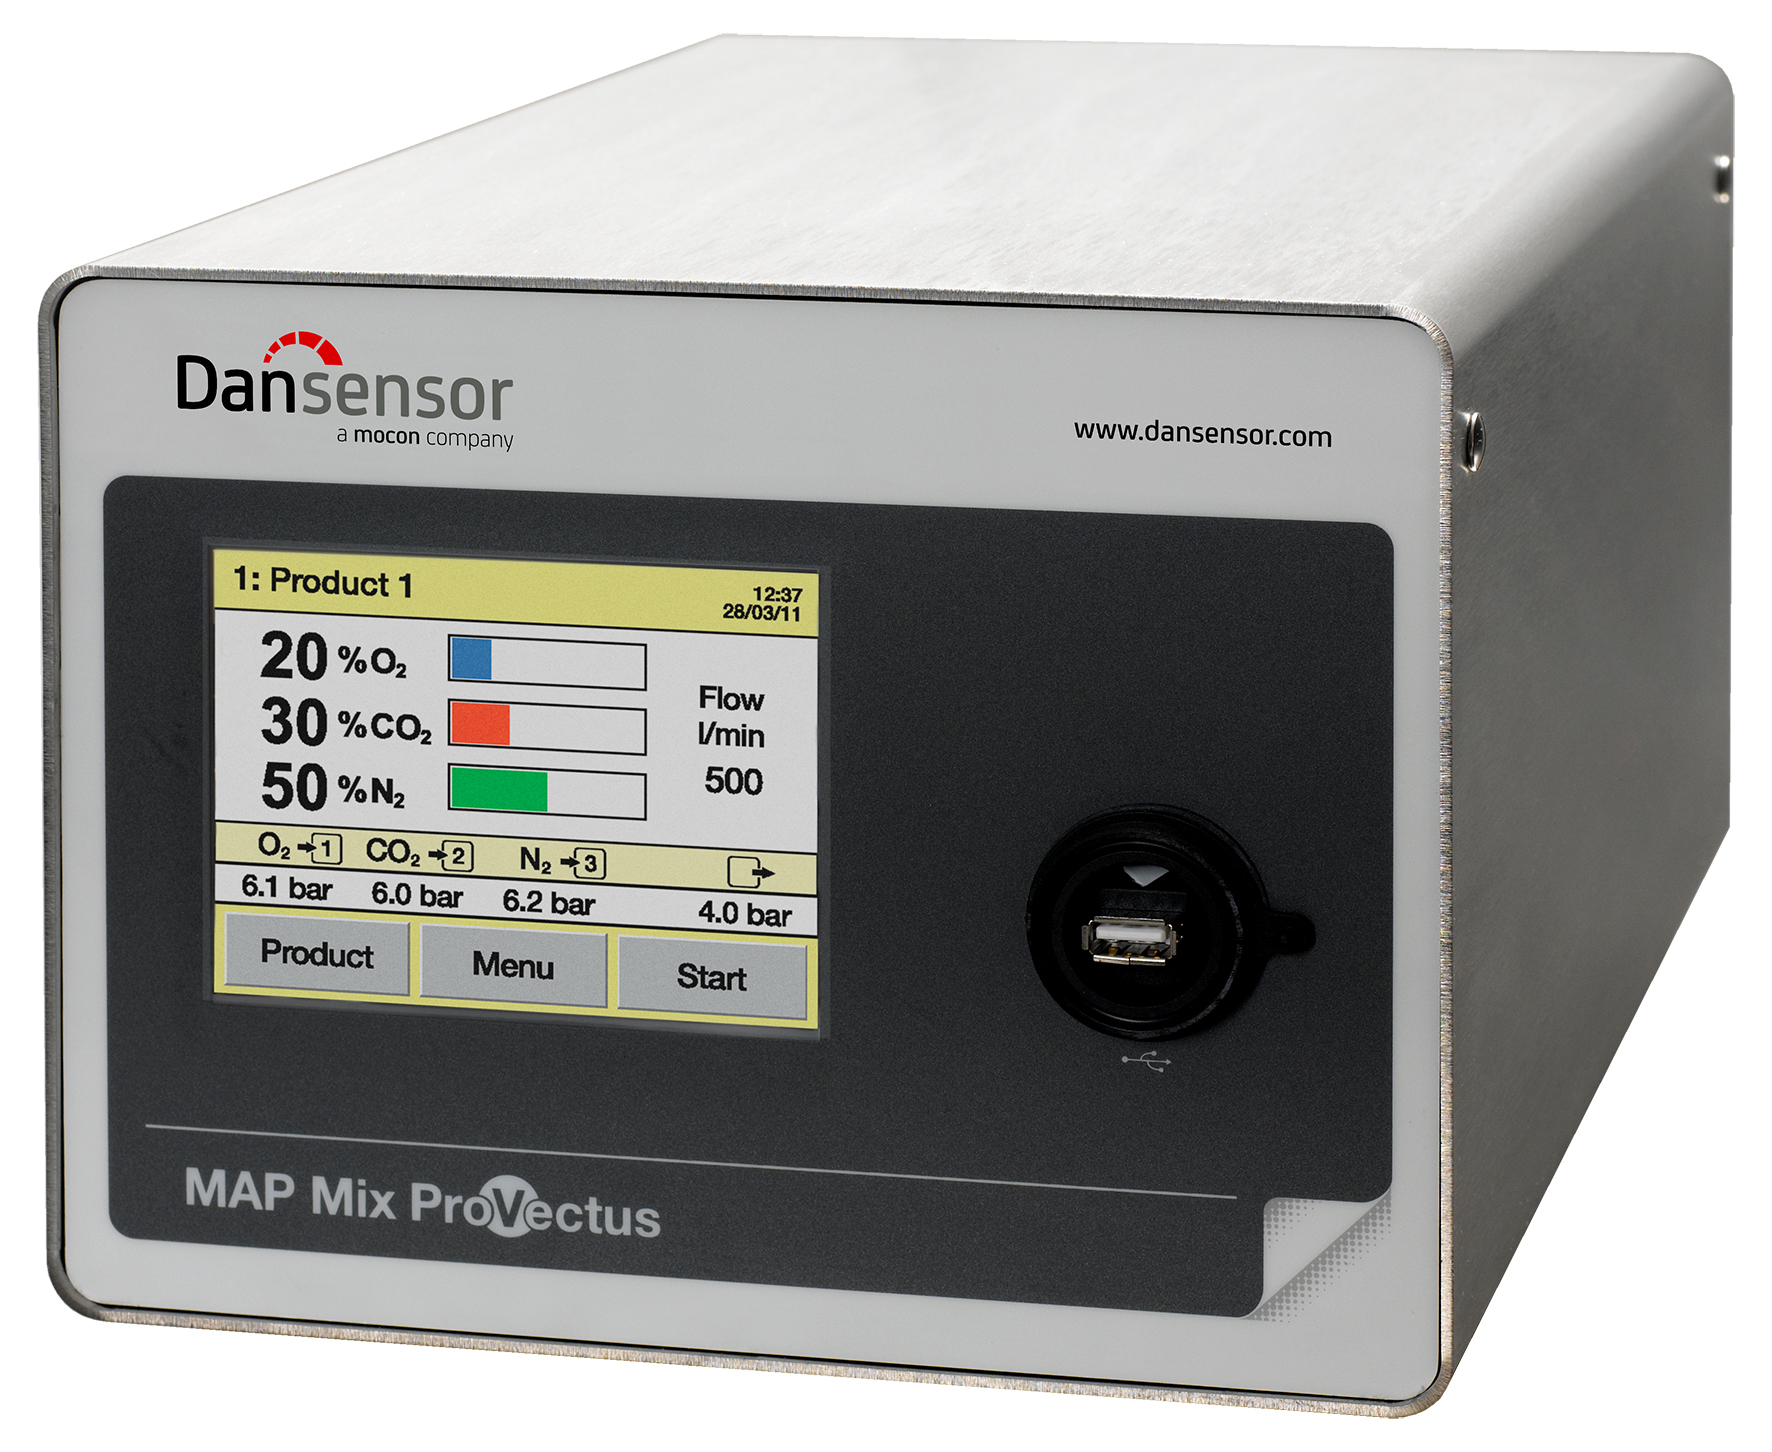 Dansensor MAP Mix Provectus – How To Videos